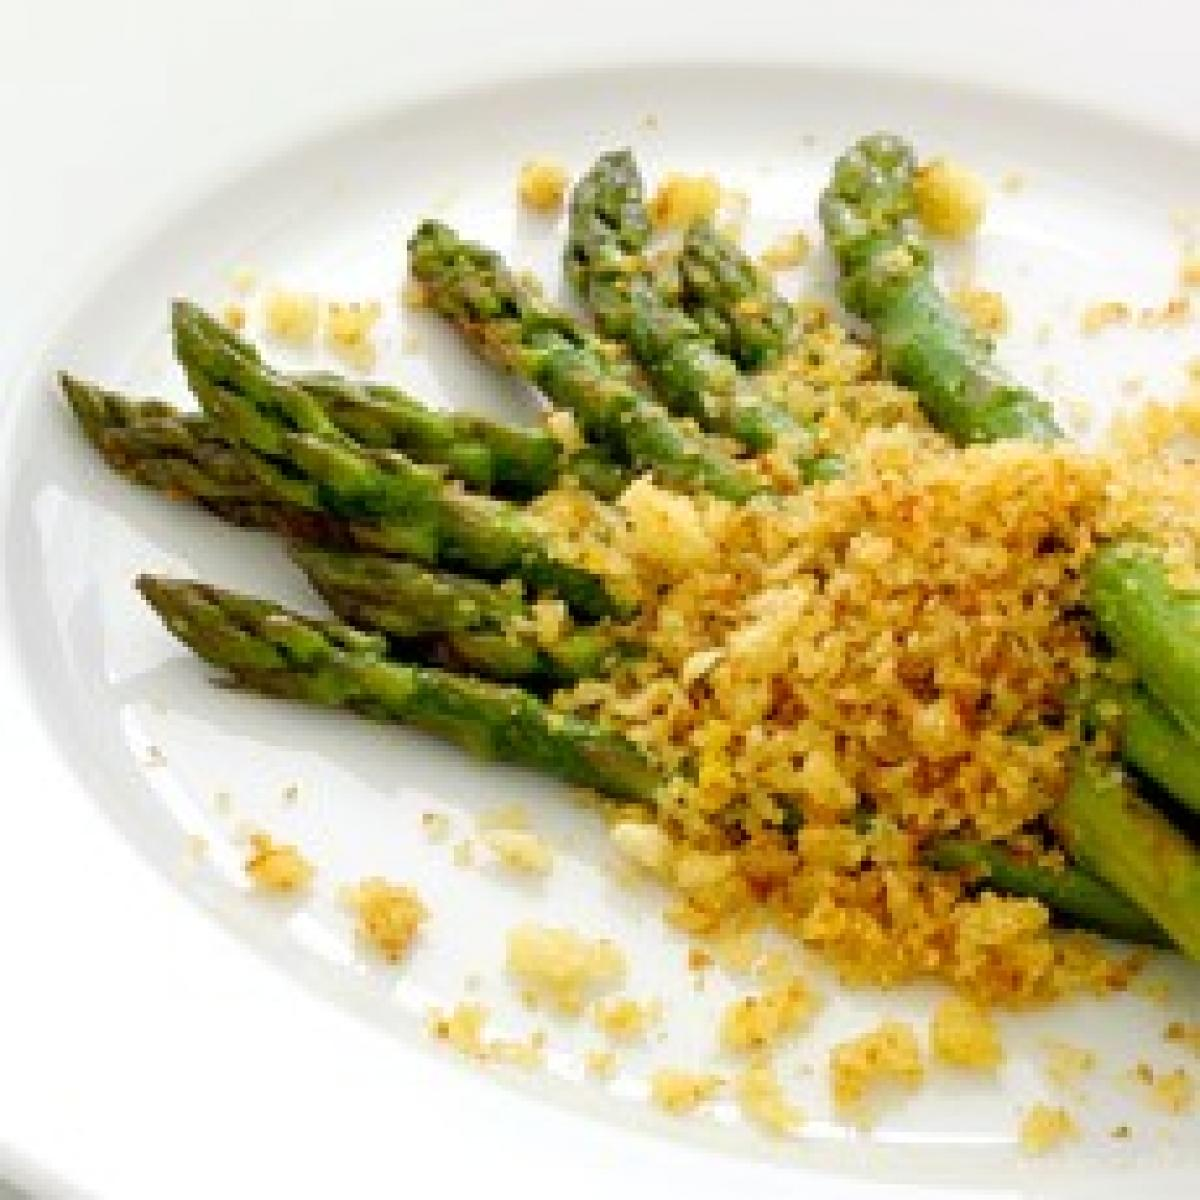 A picture of Delia's Asparagus with Lemon Butter Crumbs recipe